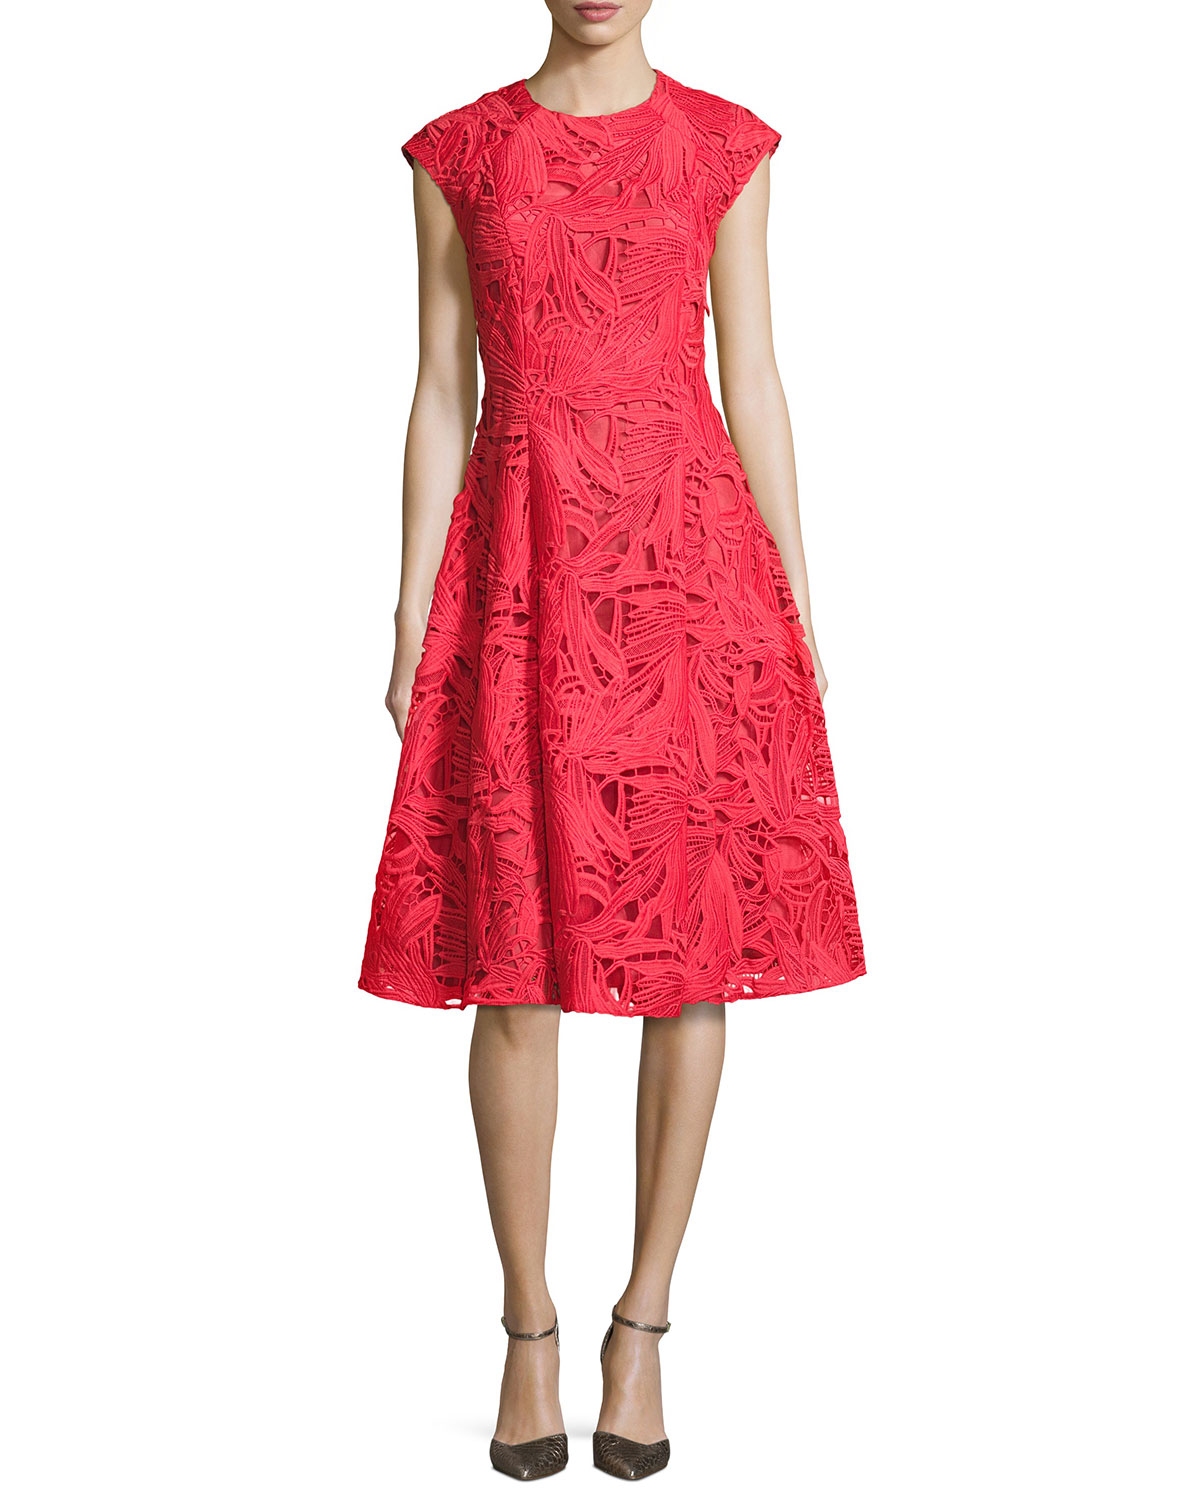 9becb9819c59 Sachin & Babi Cap-Sleeve Lace A-Line Dress, Coral | Neiman Marcus